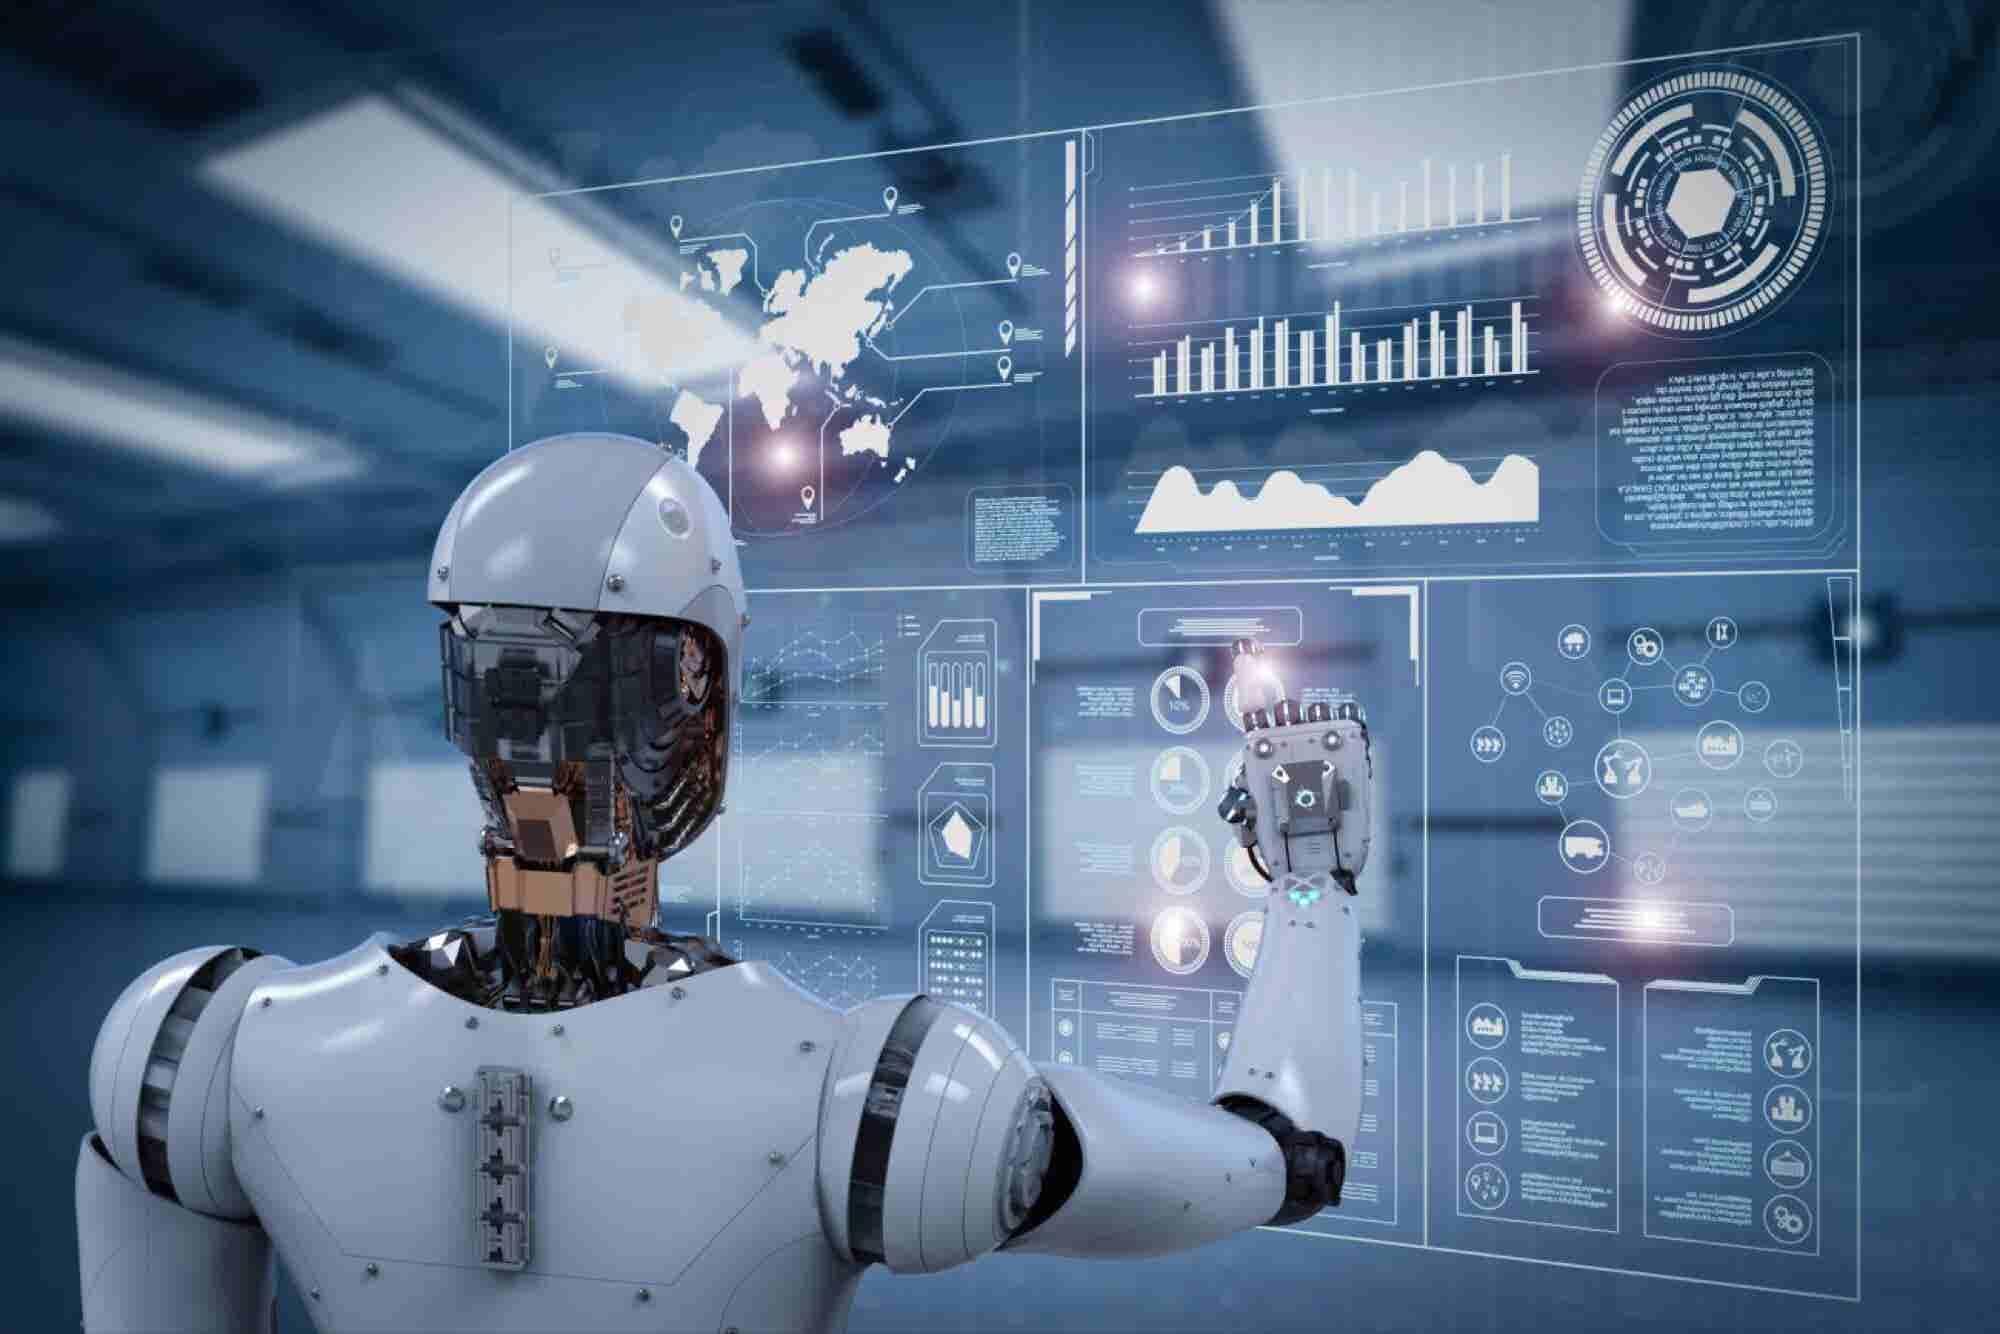 5 Unexpected Ways AI Can Save the World